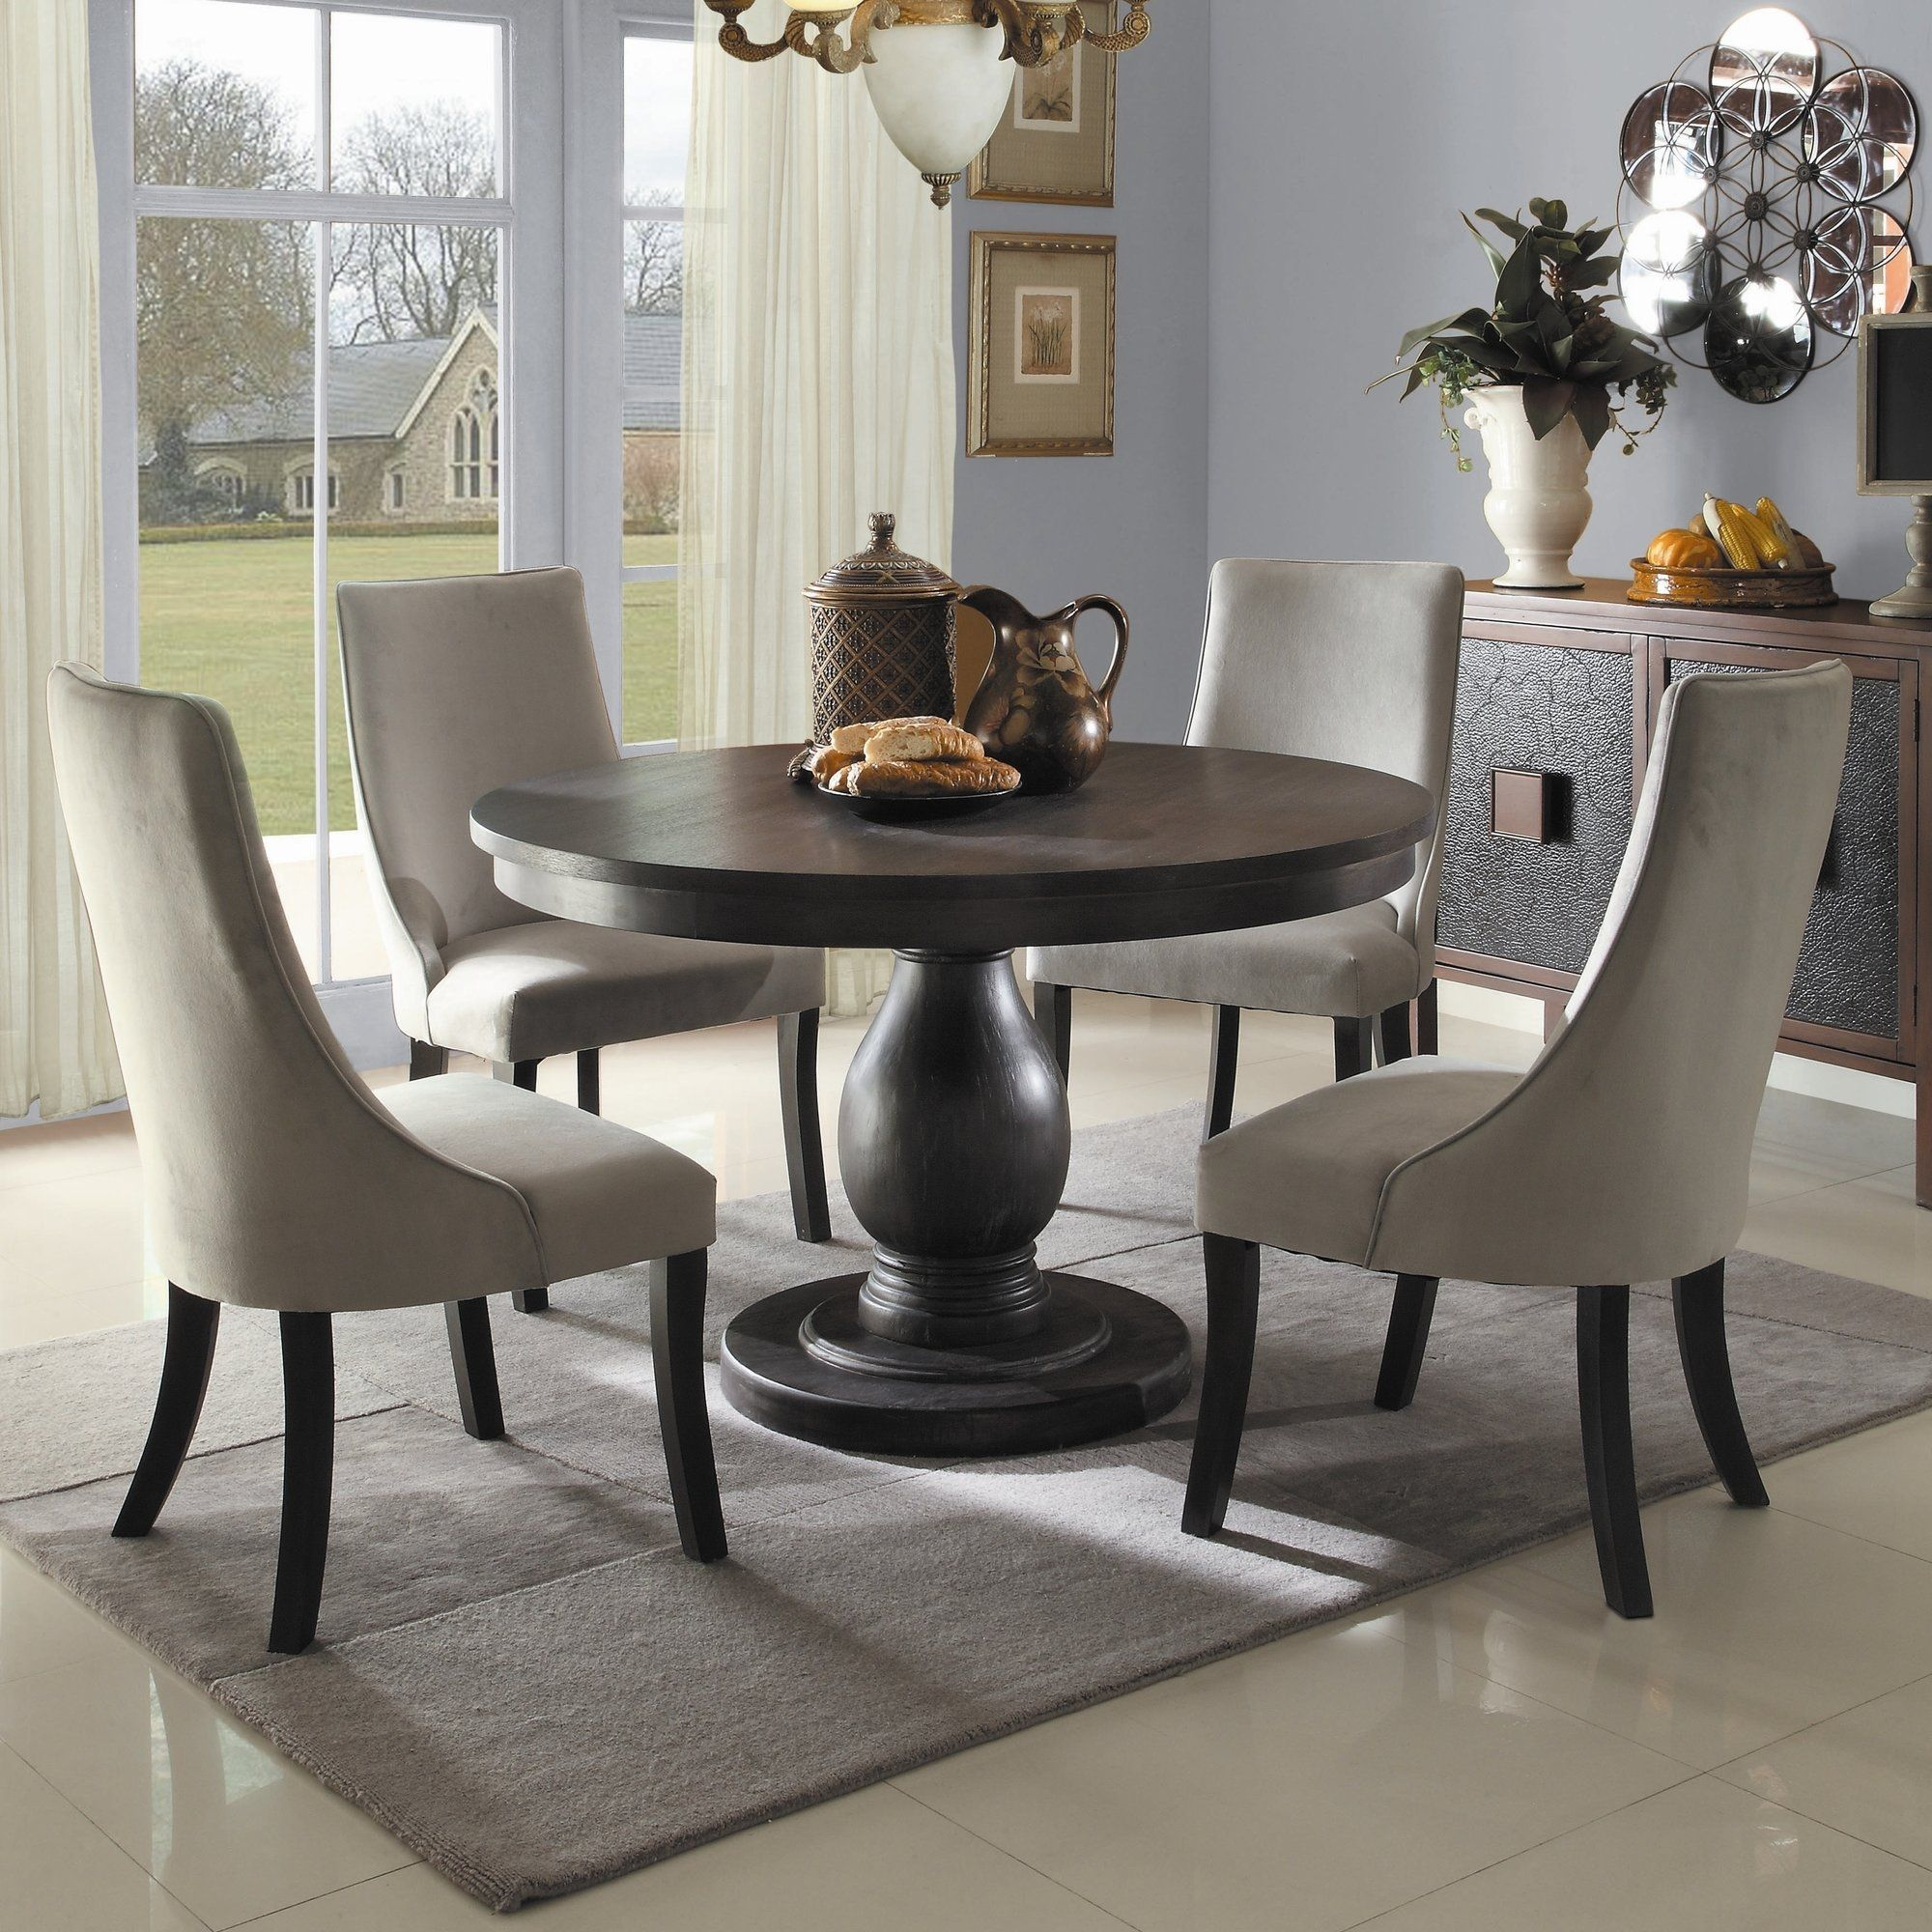 Round pedestal kitchen table and chairs argharts